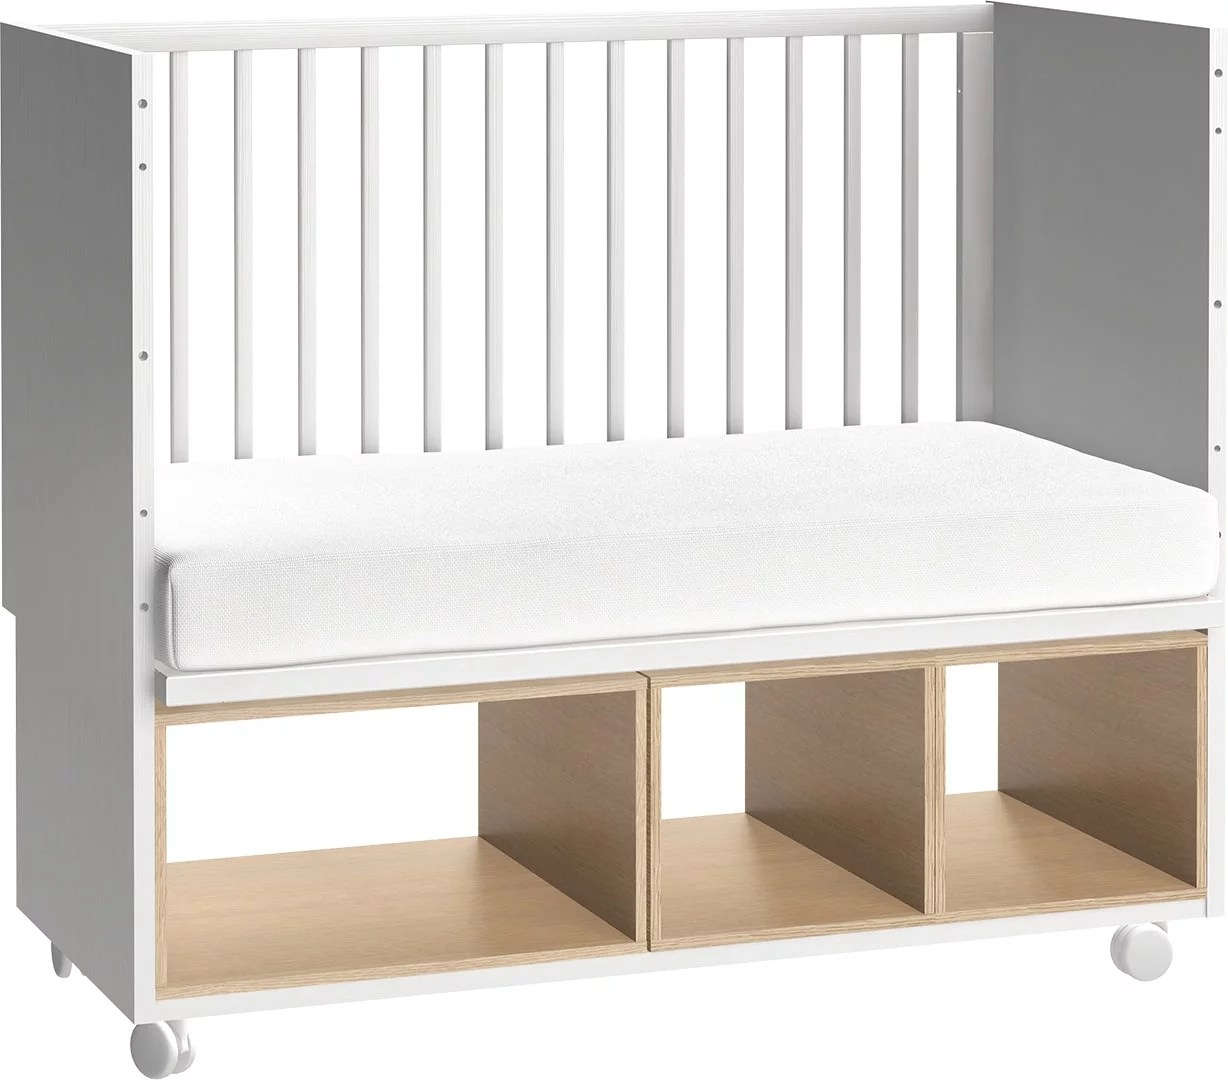 Kommode 120x60 Baby Vox 4 You Baby 2 Meubles Lit 120x60 Commode